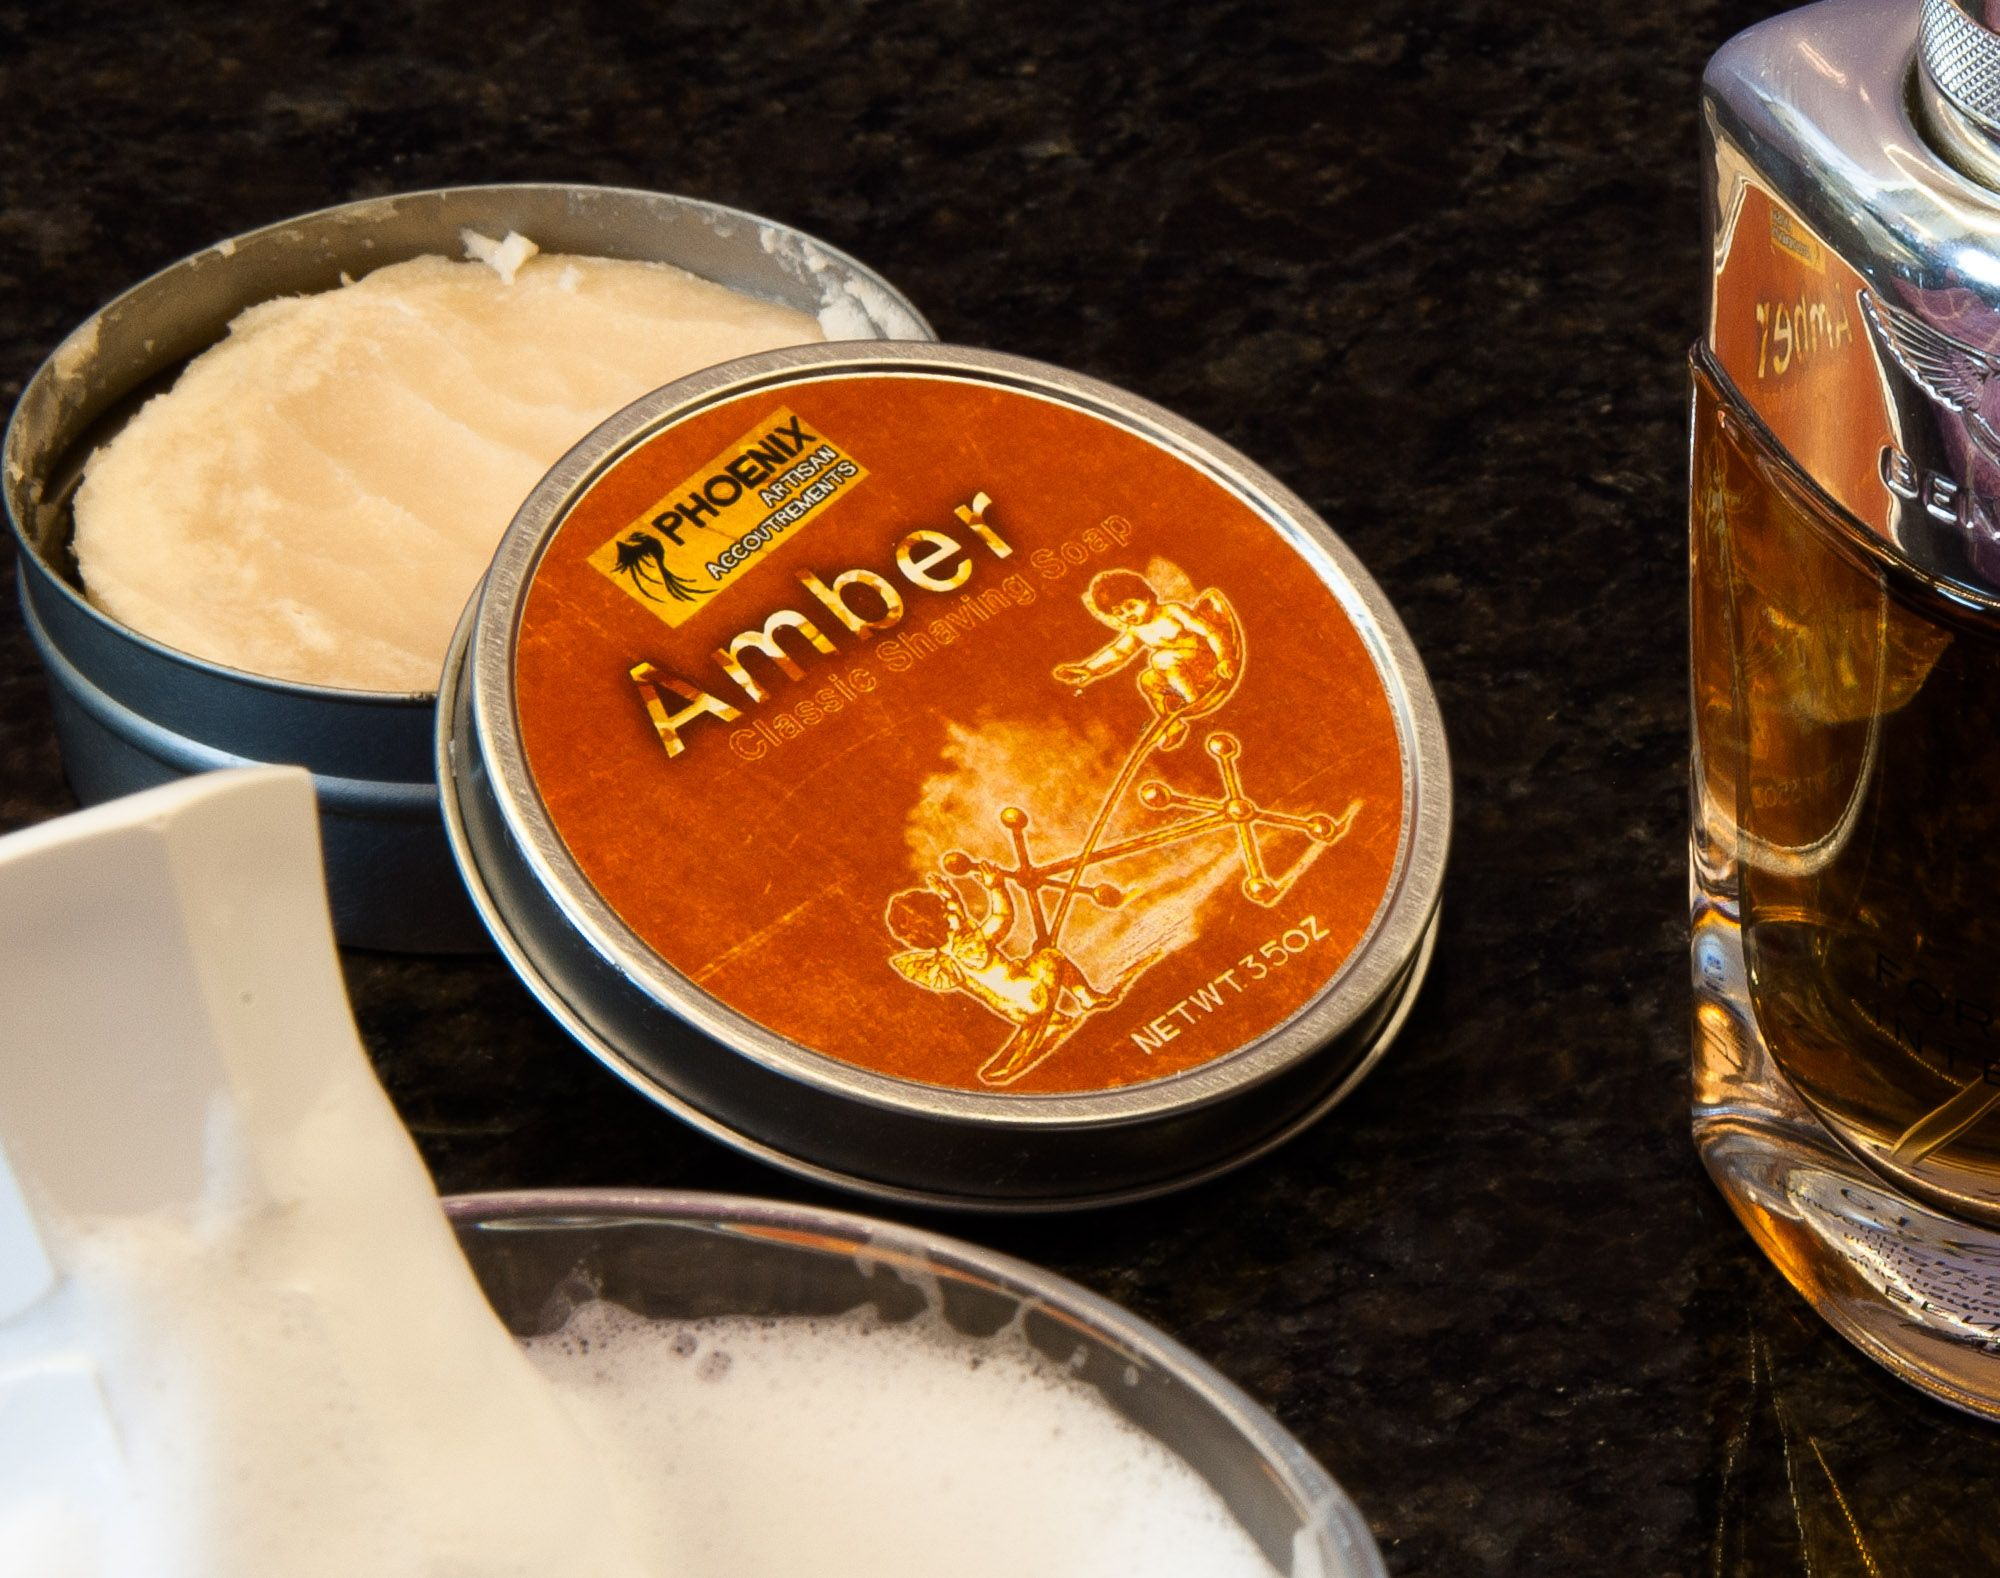 You are currently viewing Phoenix Artisan Accoutrements Amber Shaving Soap – recenzja mydła do golenia